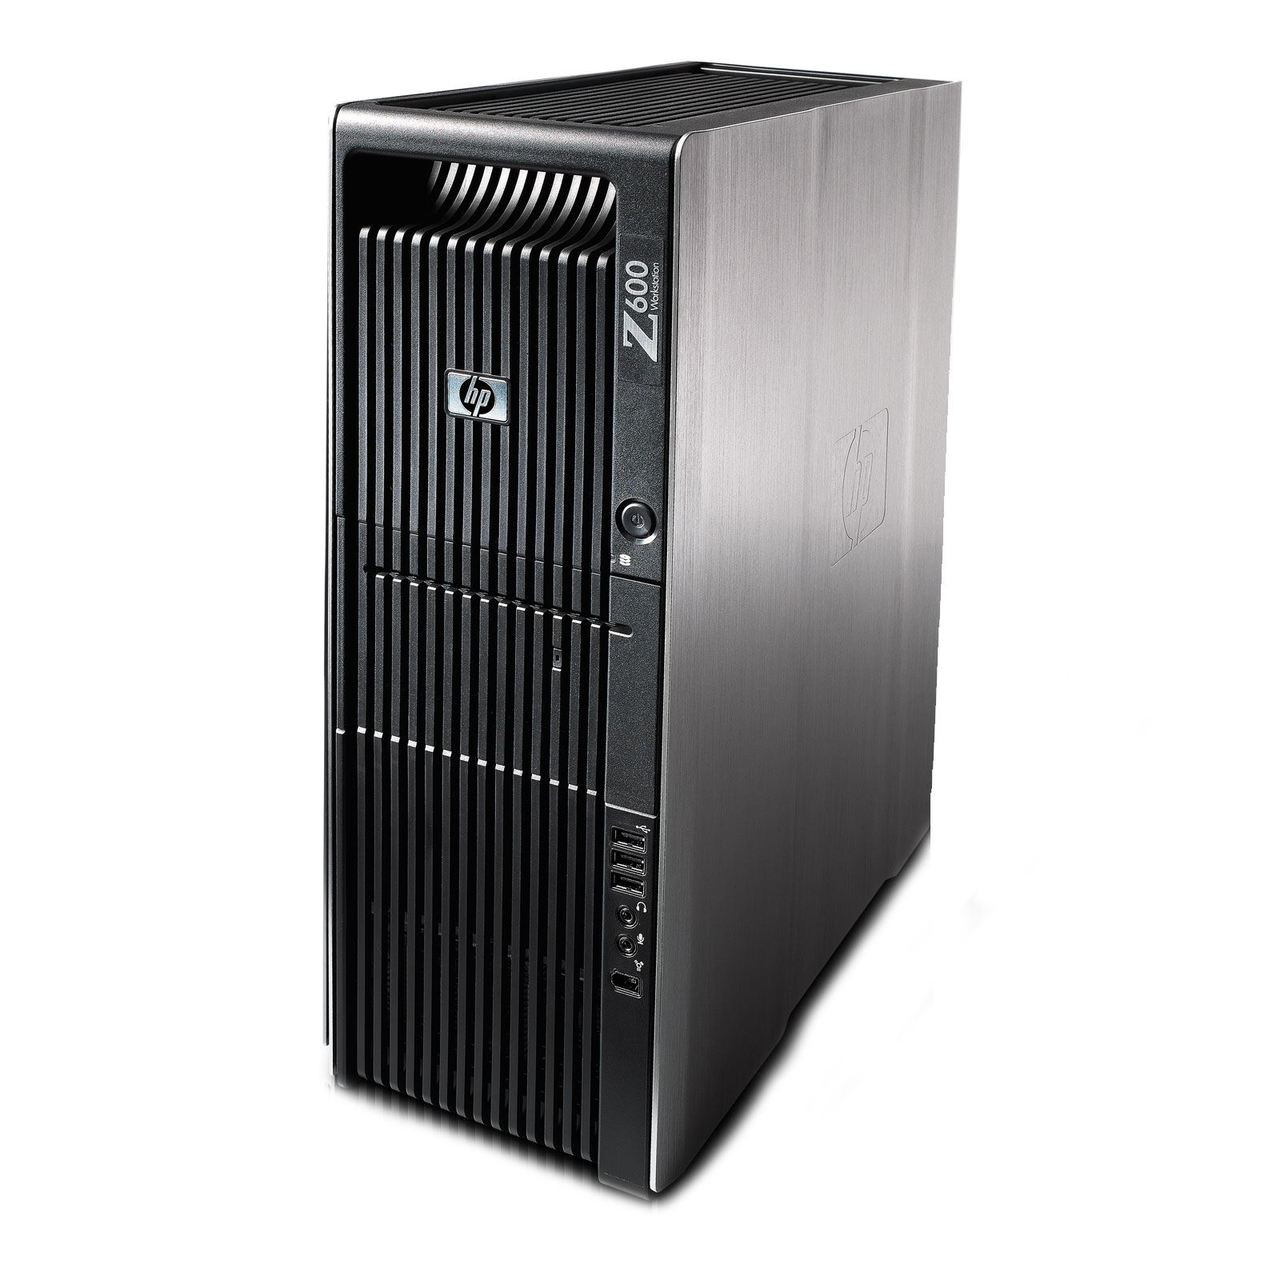 HP Z600 Workstation - front right view